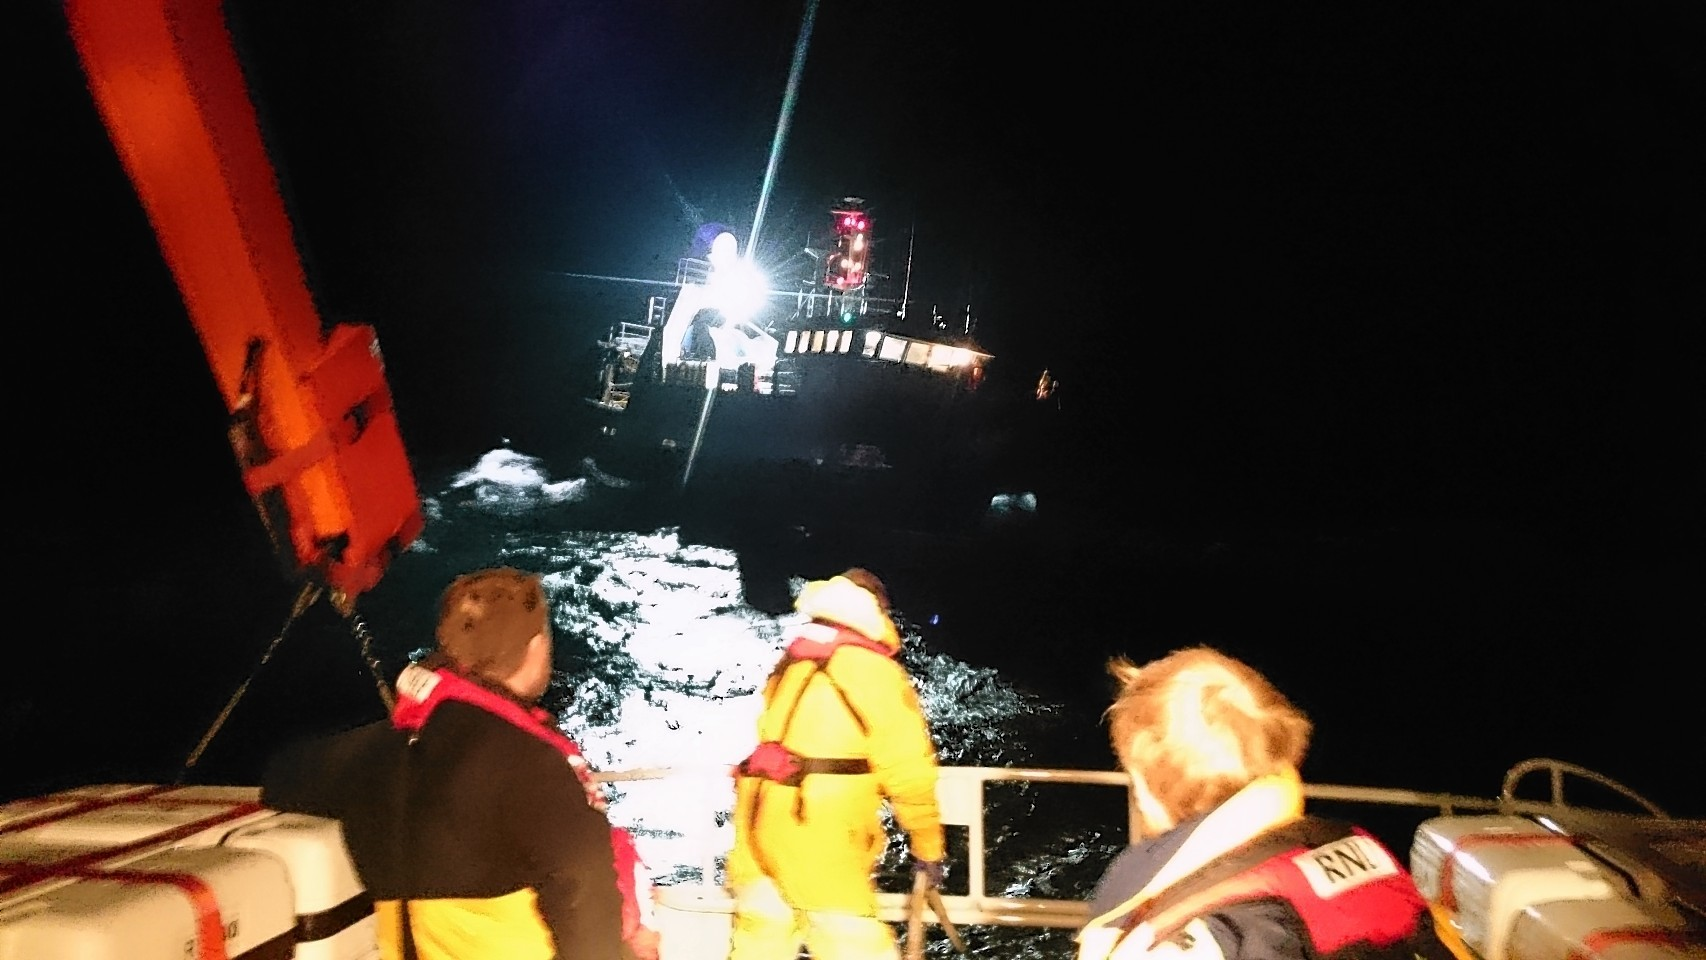 Stromless lifeboat volunteers towed the fishing boat to safety